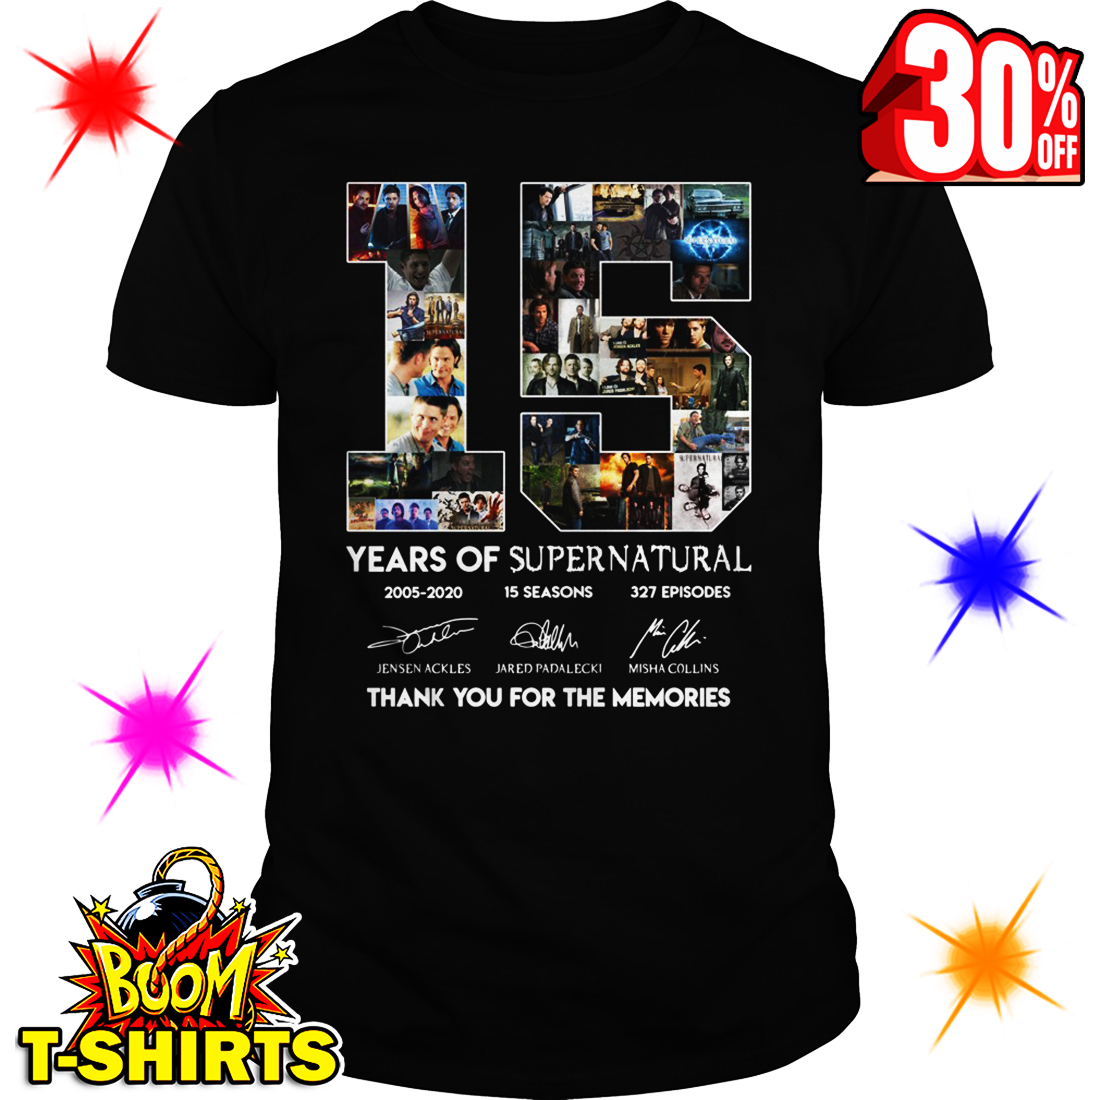 15 Years Of Supernatural 2005 2020 15 Seasons 327 EpisodesThank You For The Memories shirt